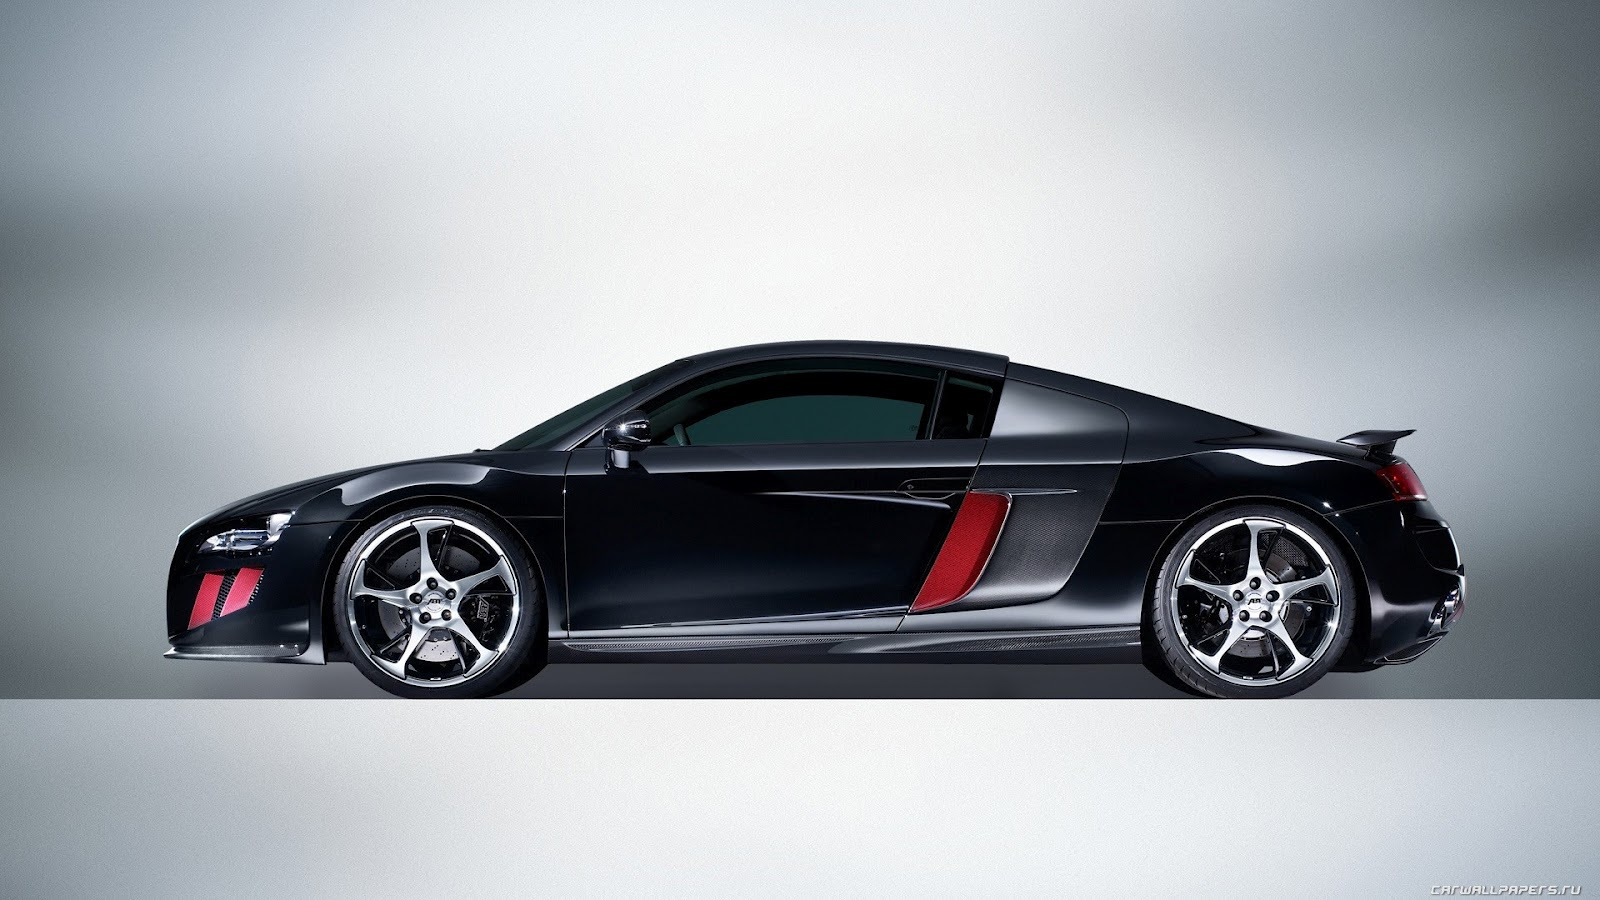 Cars HD Audi R8 HD Wallpapers 1600x900